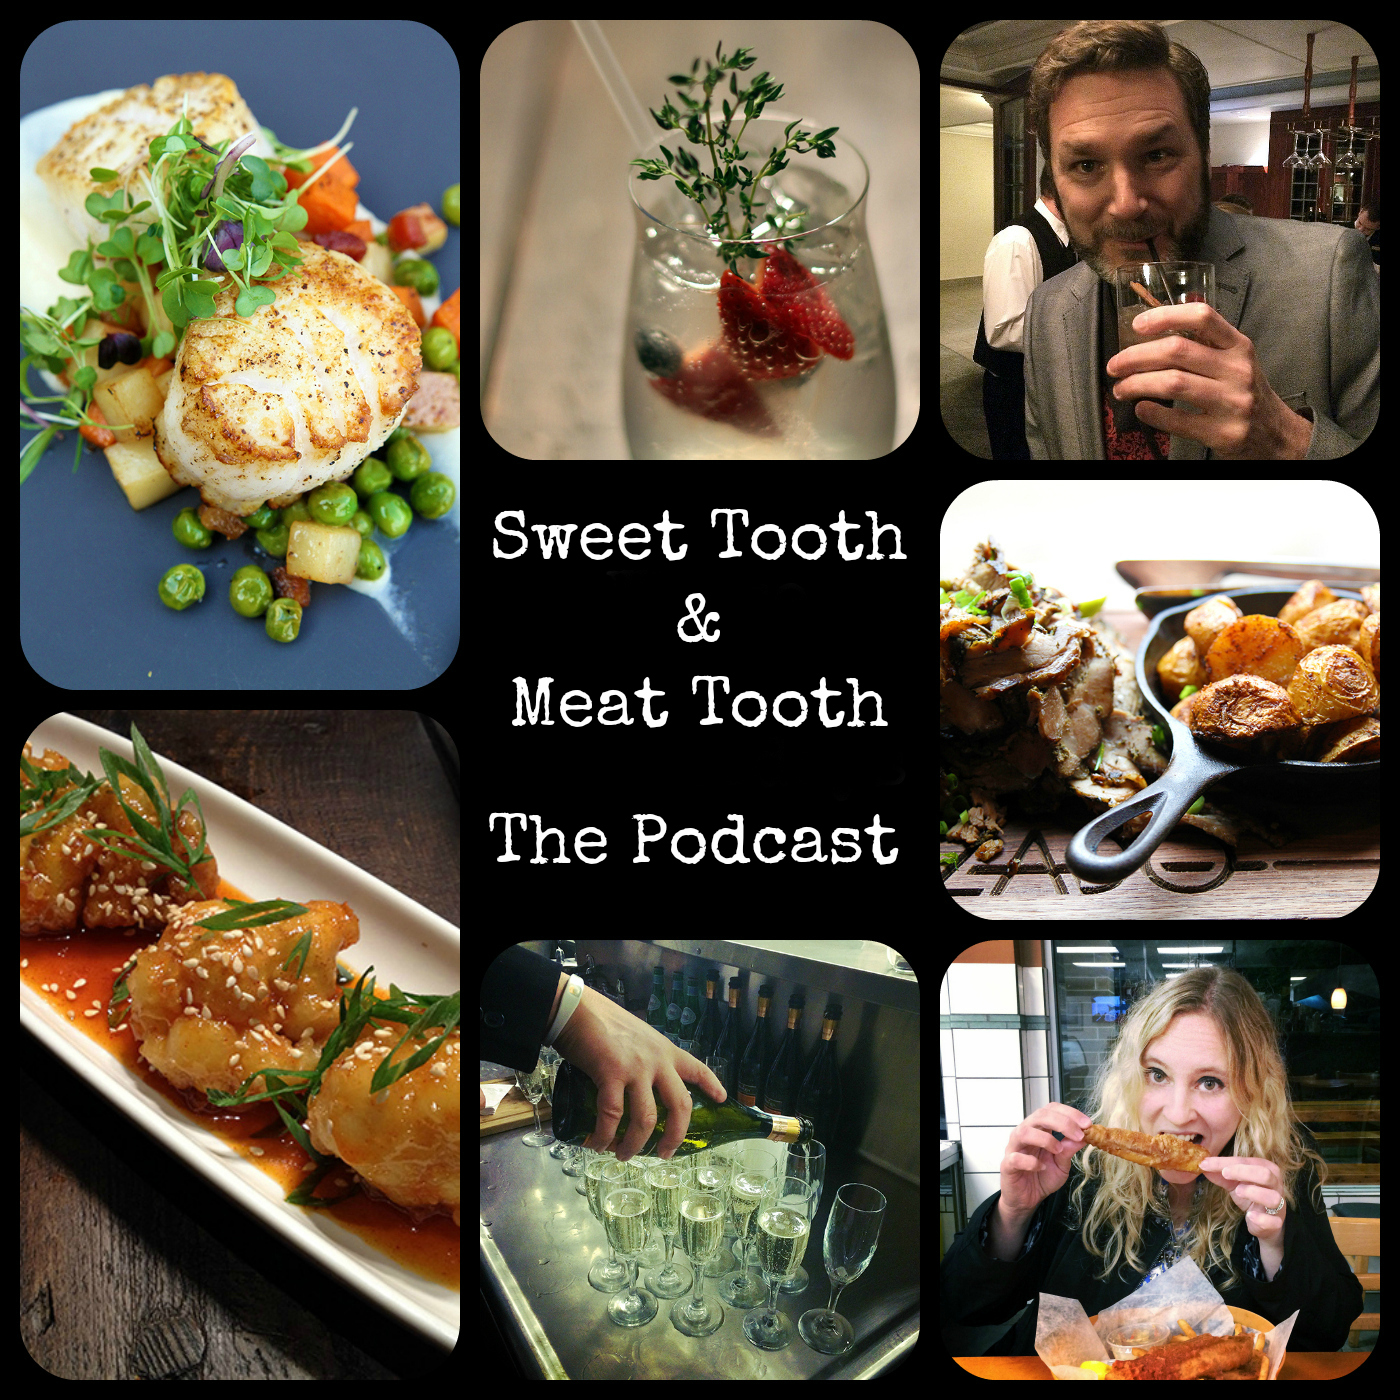 Sweet Tooth and Meat Tooth